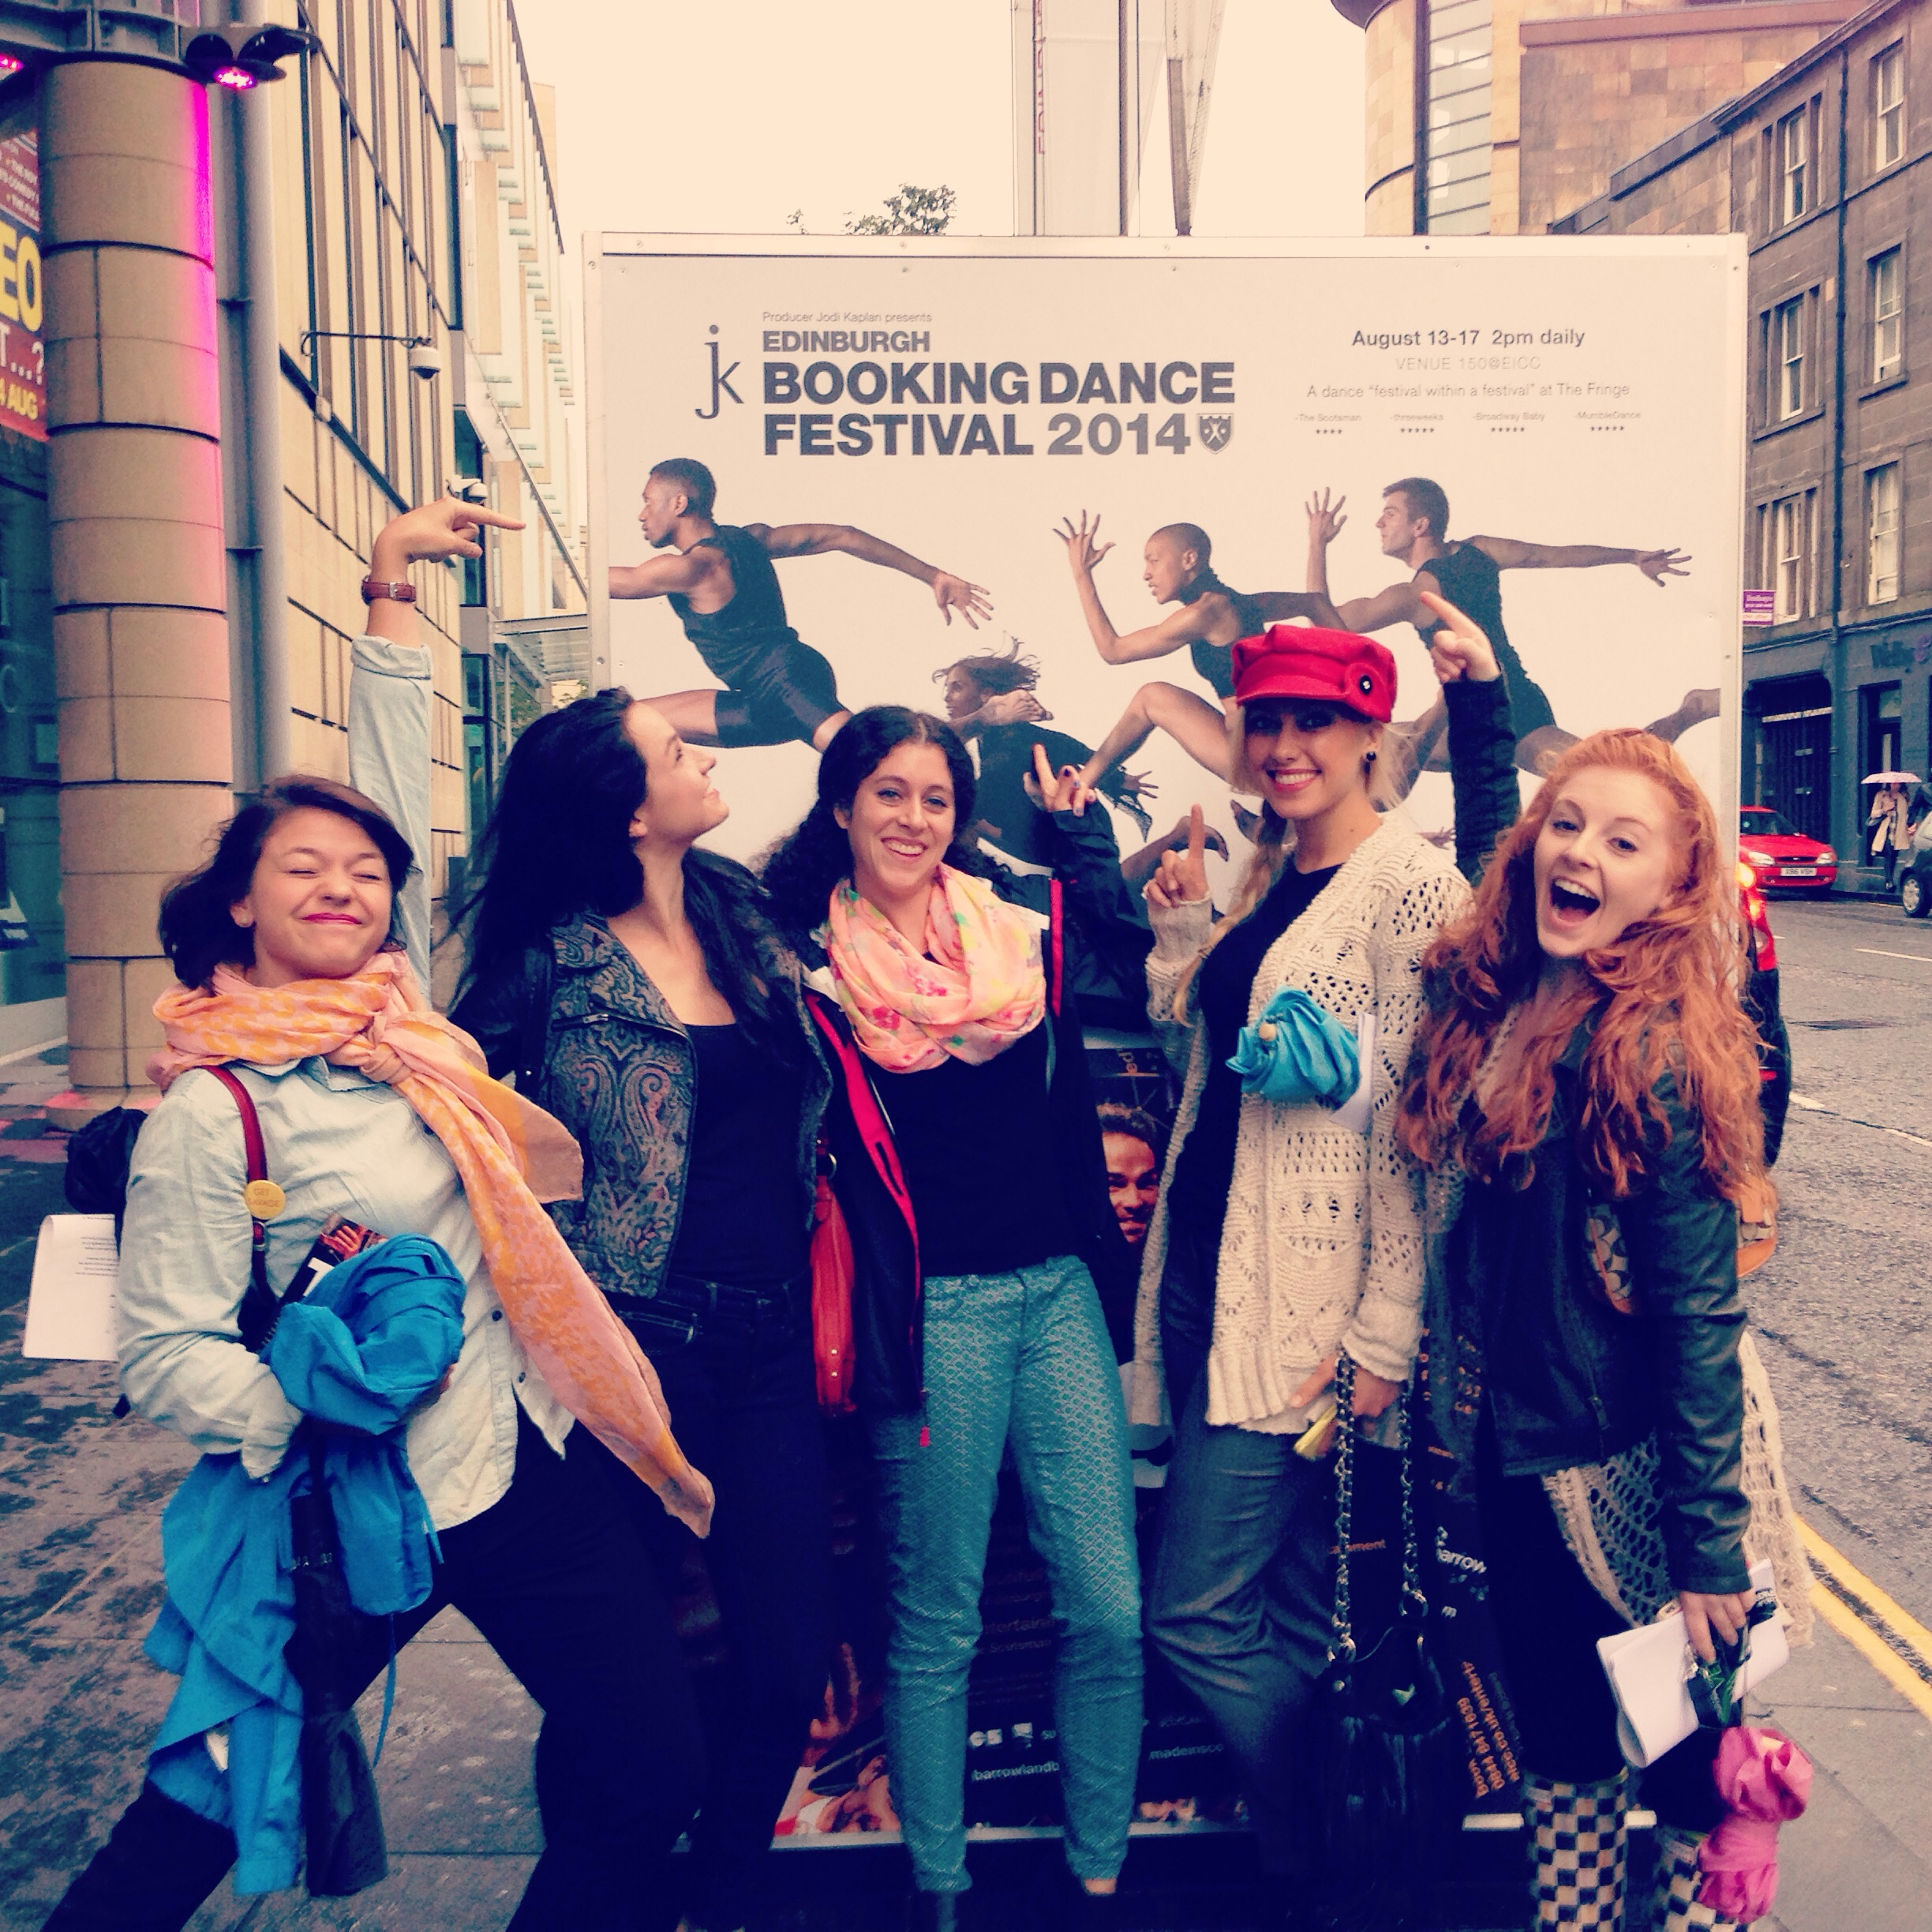 The girls in front of the EICC with the Booking Dance Festival poster!